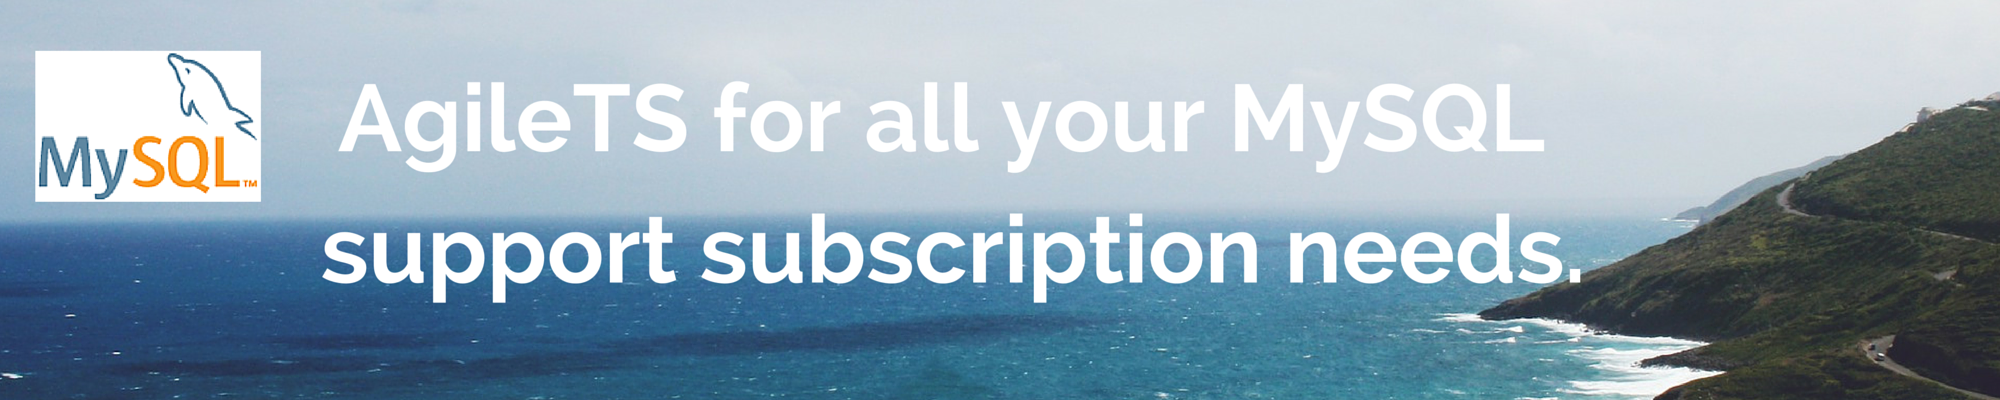 AgileTS for all your MySQL support subscription needs